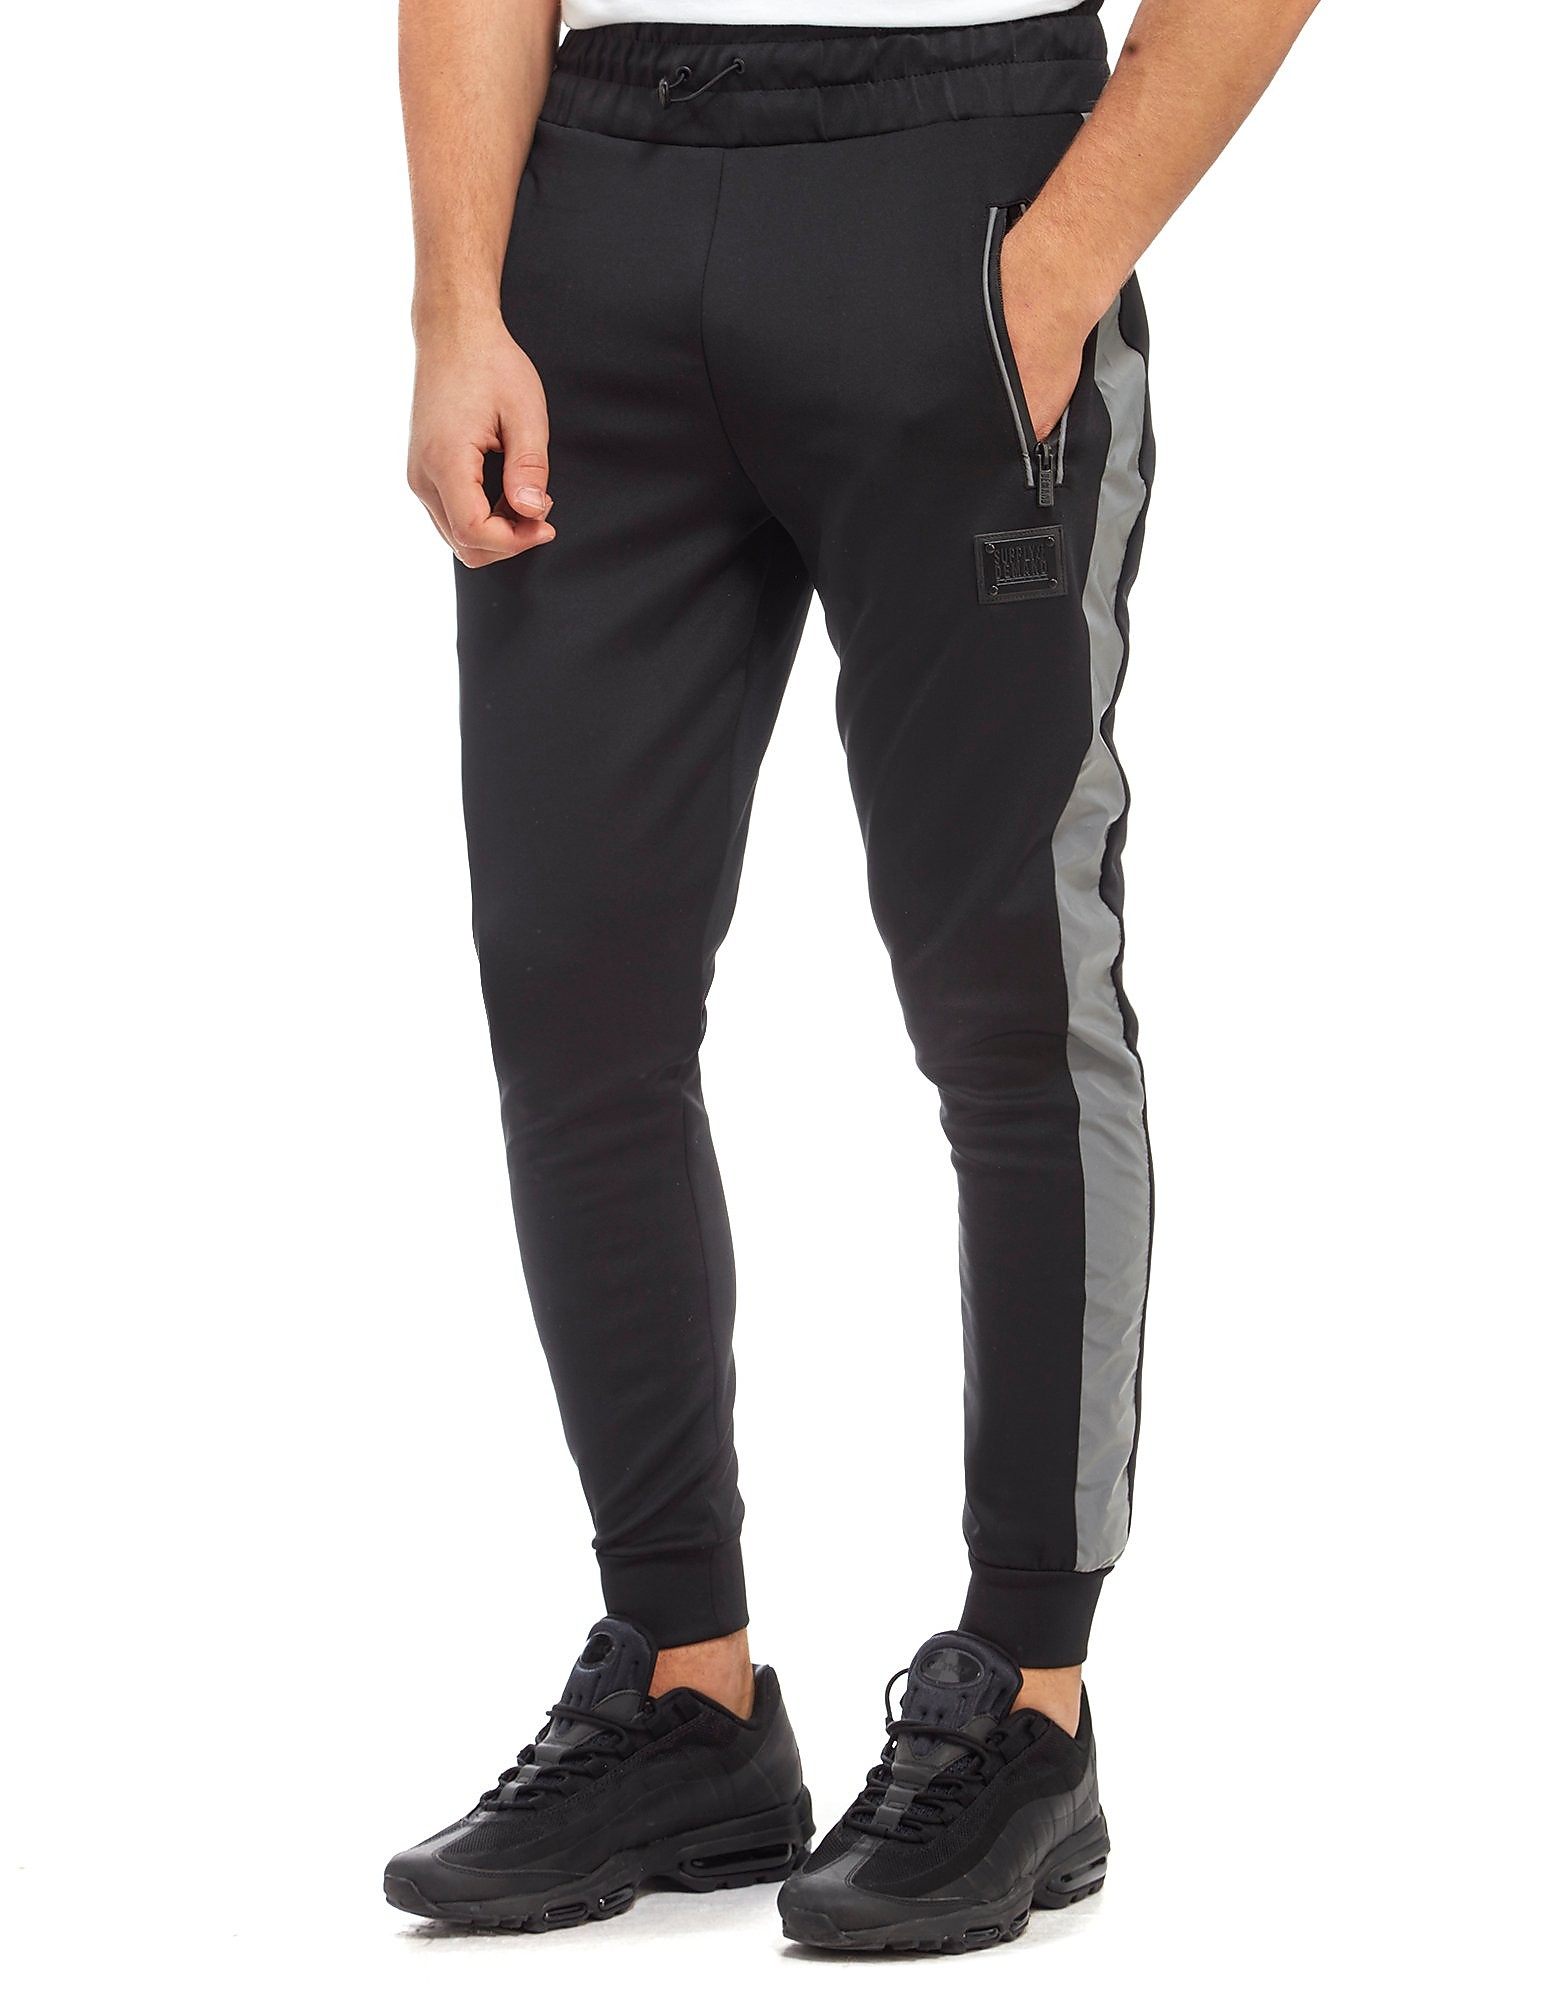 Supply & Demand Reflective Tracker Joggers